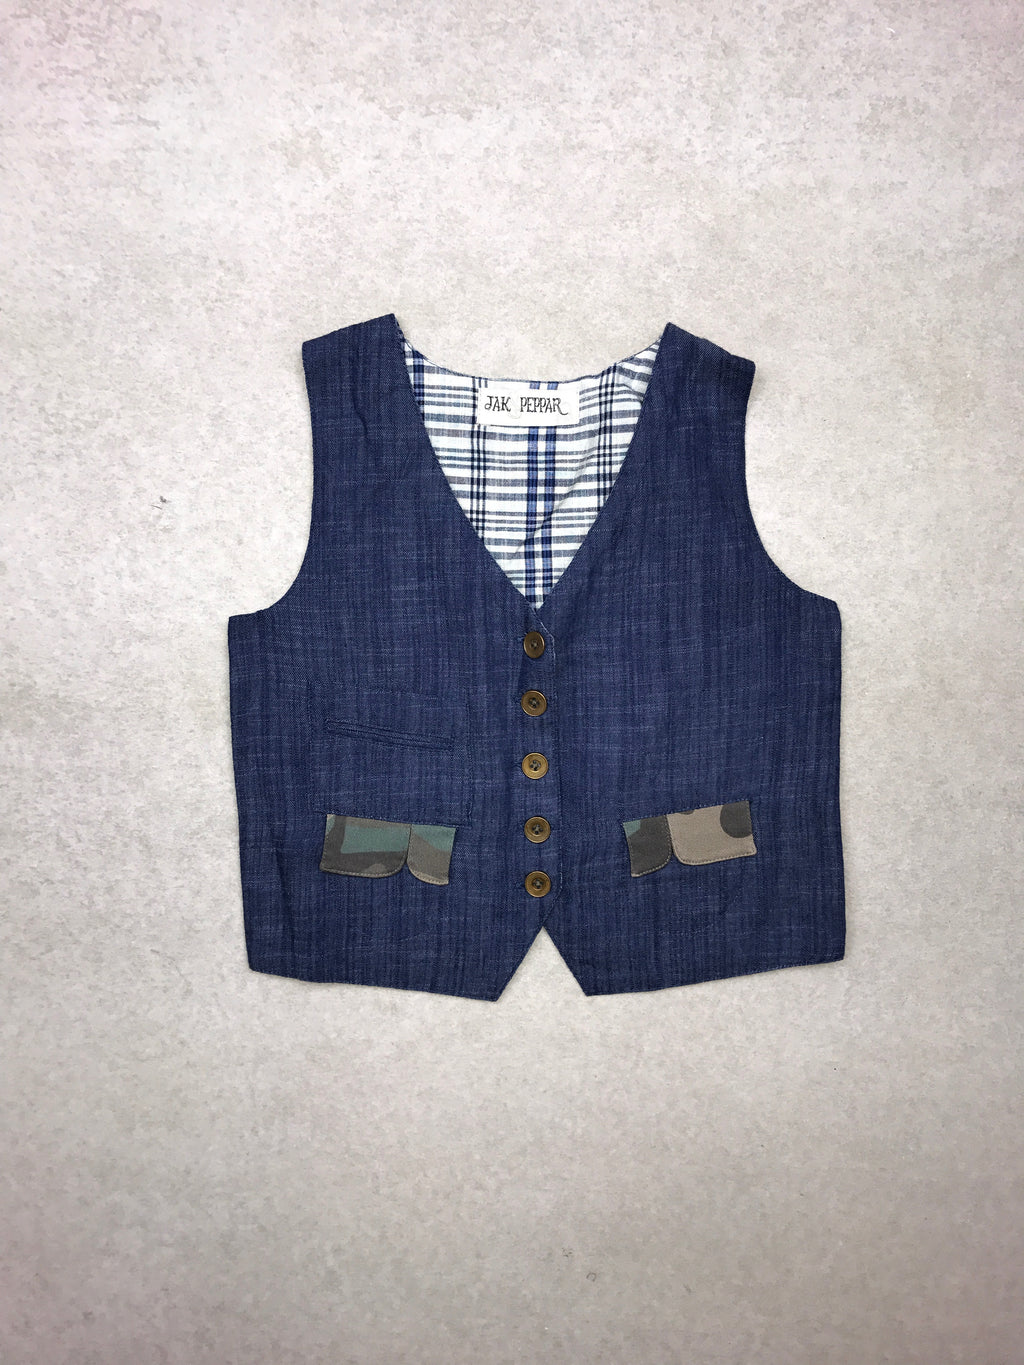 Junk Town Vest in Chambray